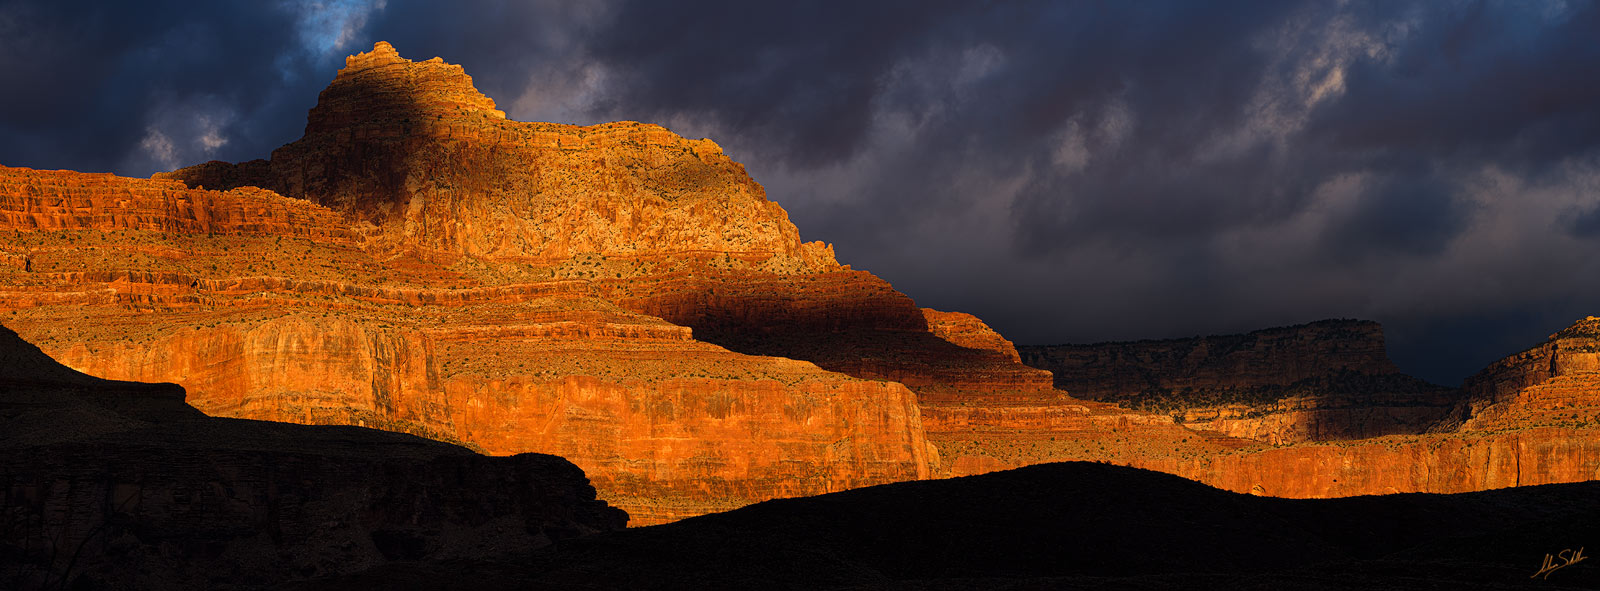 Storm clouds move across Vishnu Temple and the North Rim as the first rays of light of a new day paint the cliffs in fiery hues...